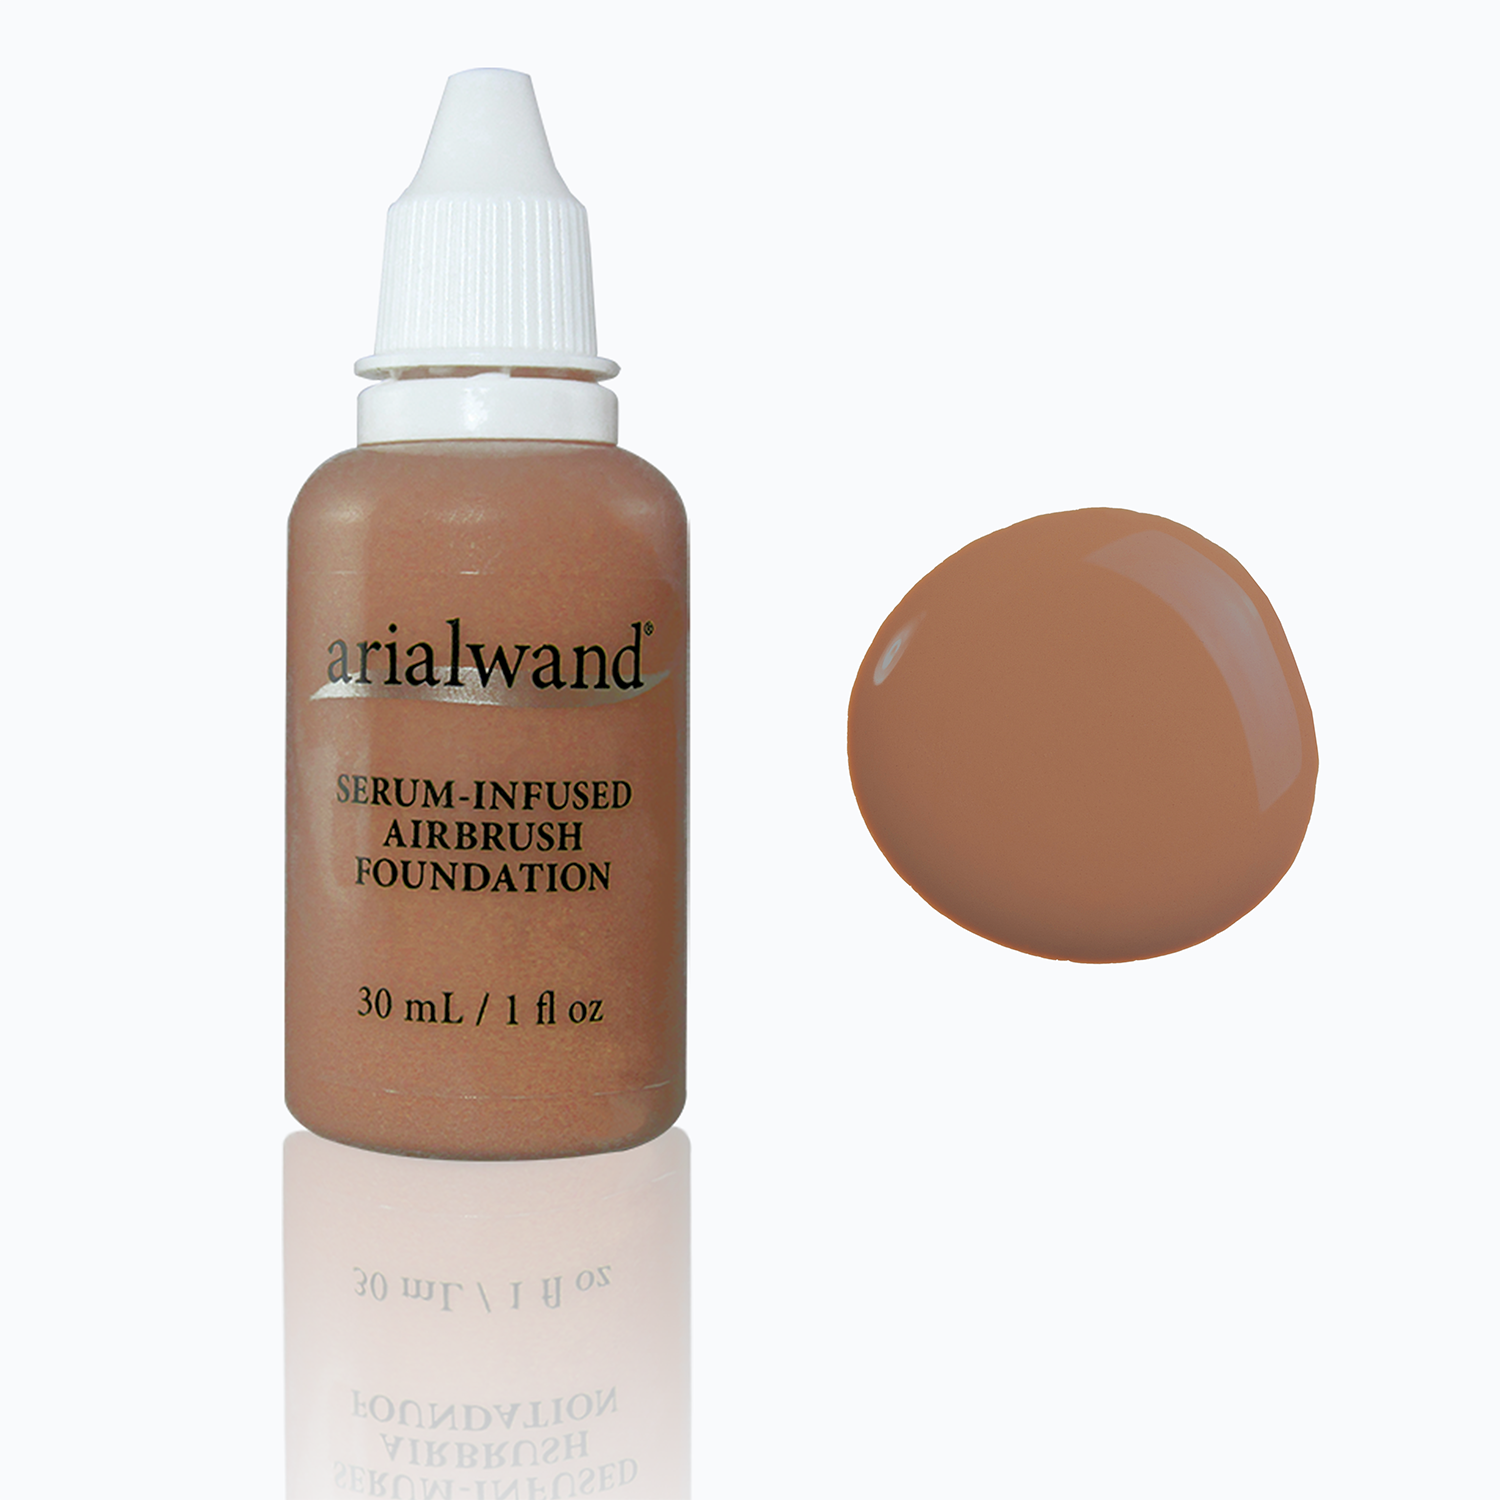 Arialwand Airbrush Foundation W/Hyaluronic Acid - Natural Bronze (Shade #008)